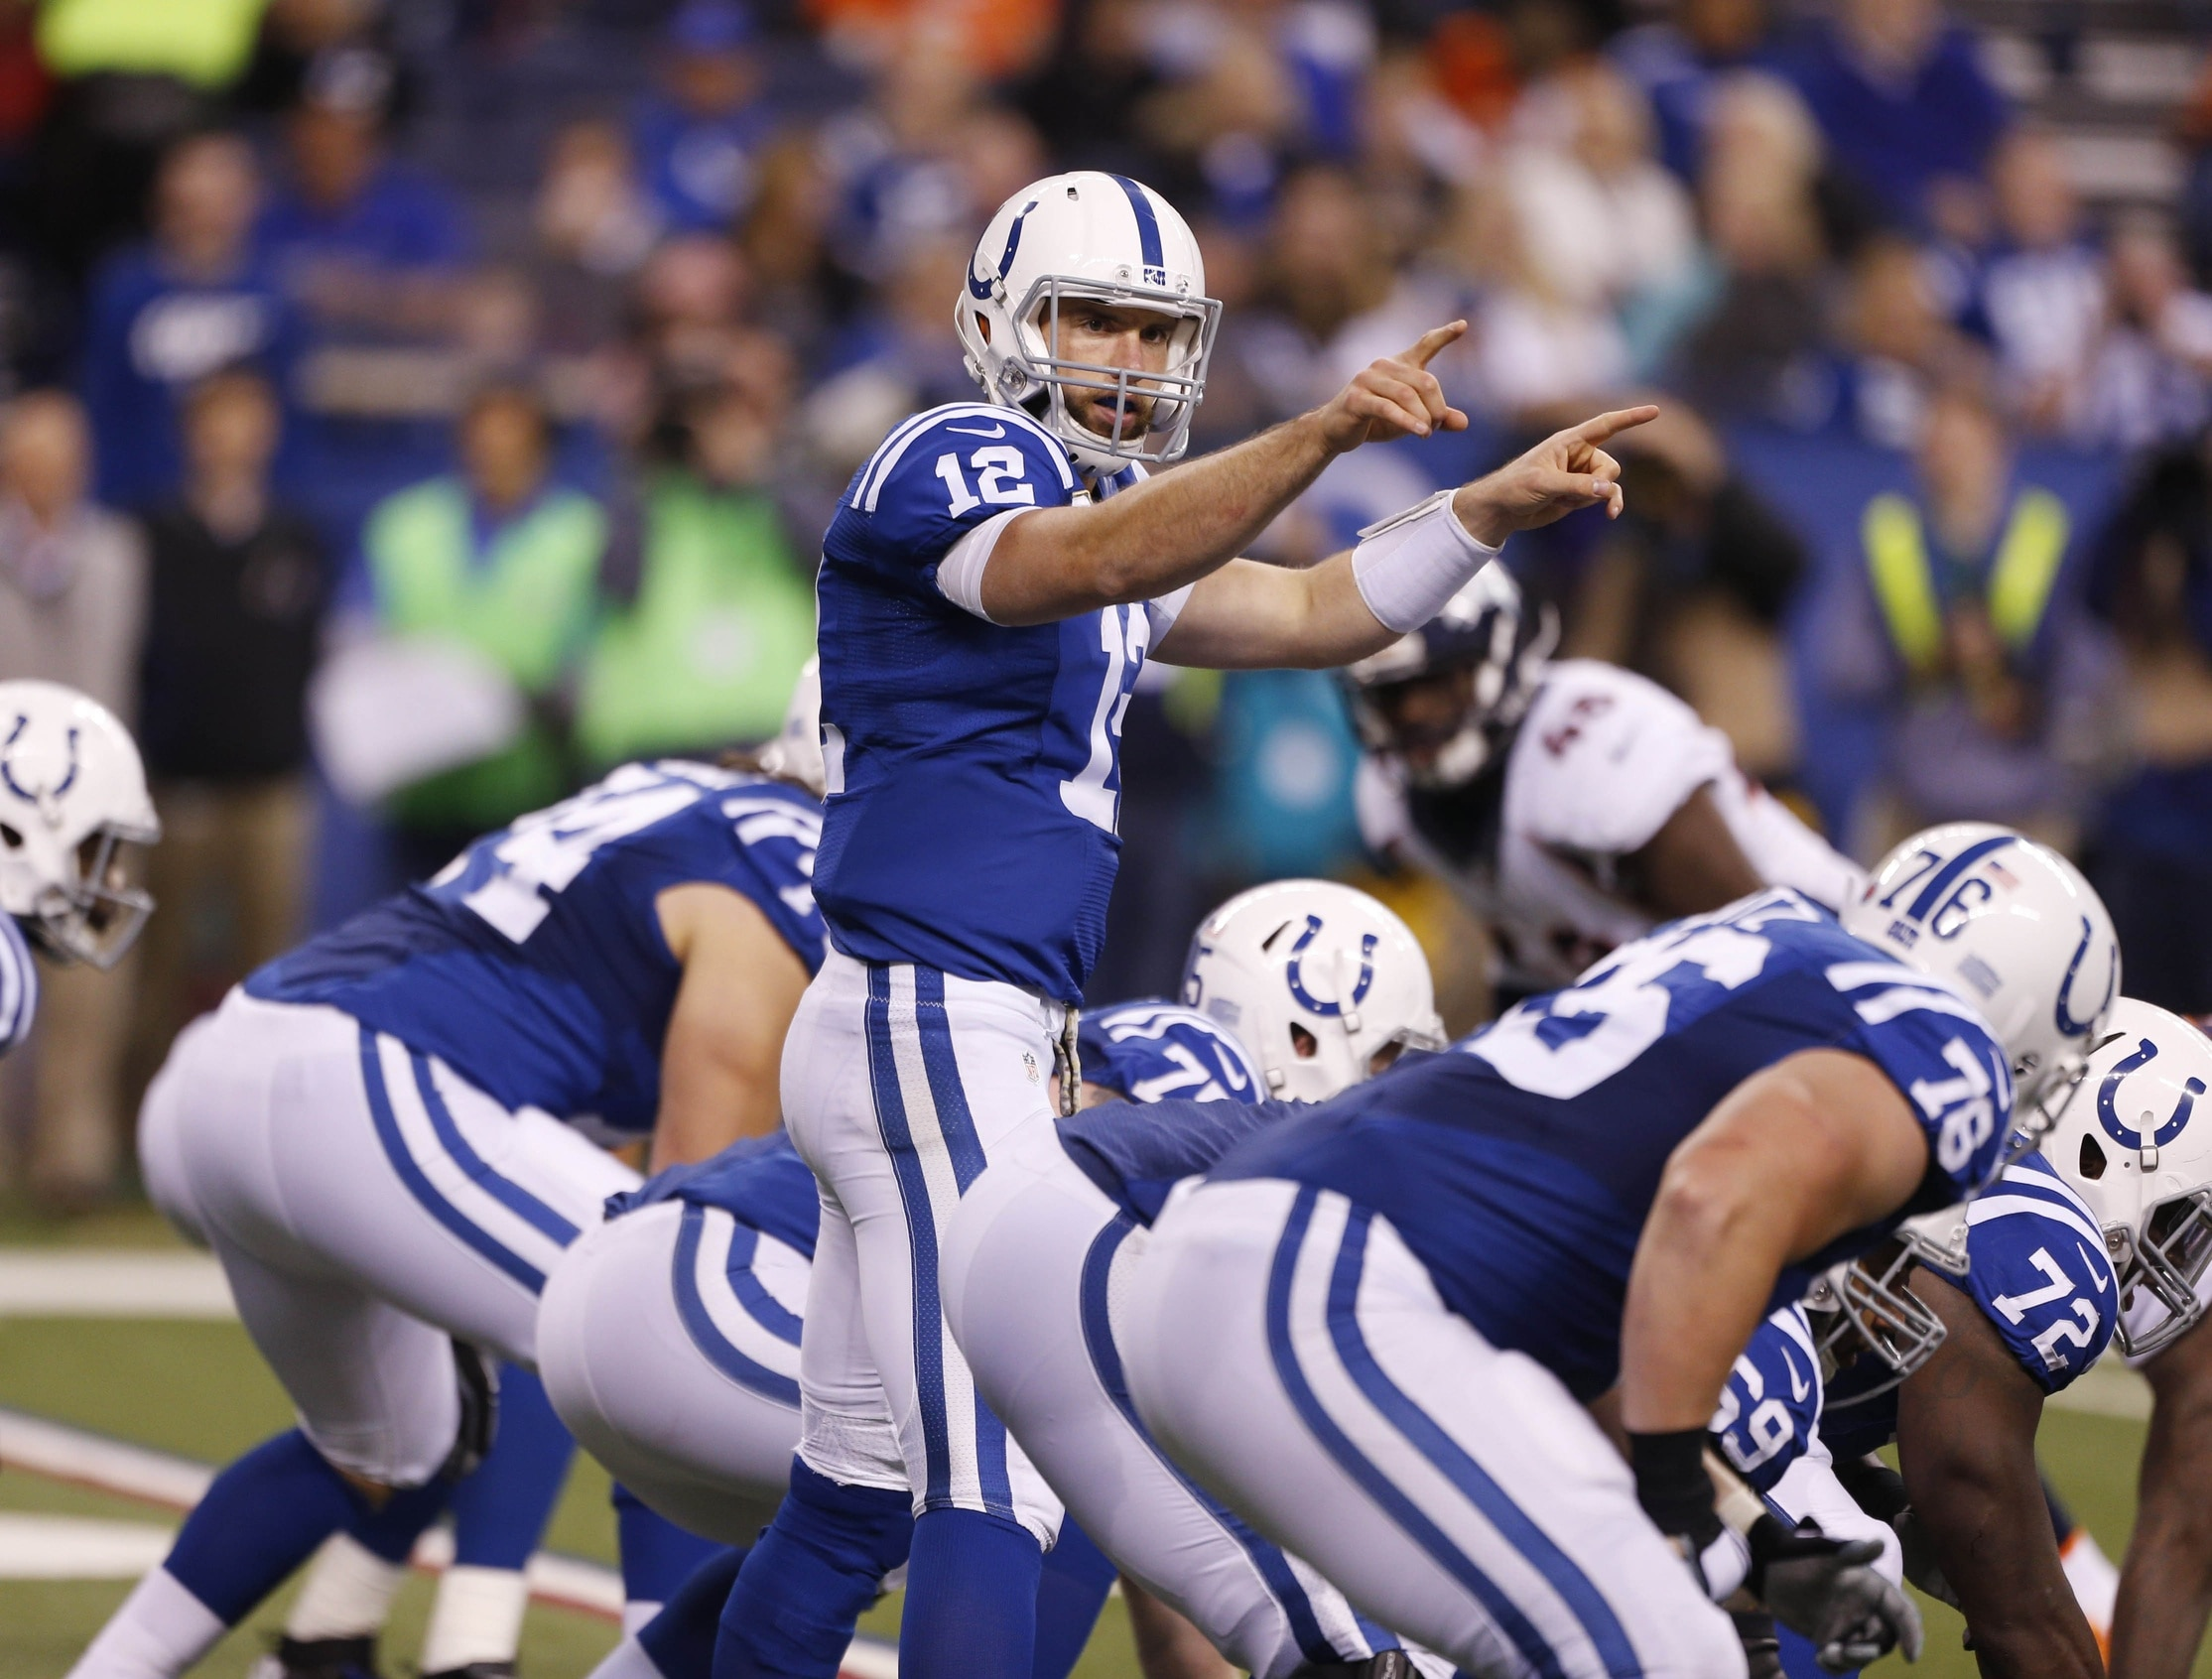 Colts QB Andrew Luck needs all the help he can get.